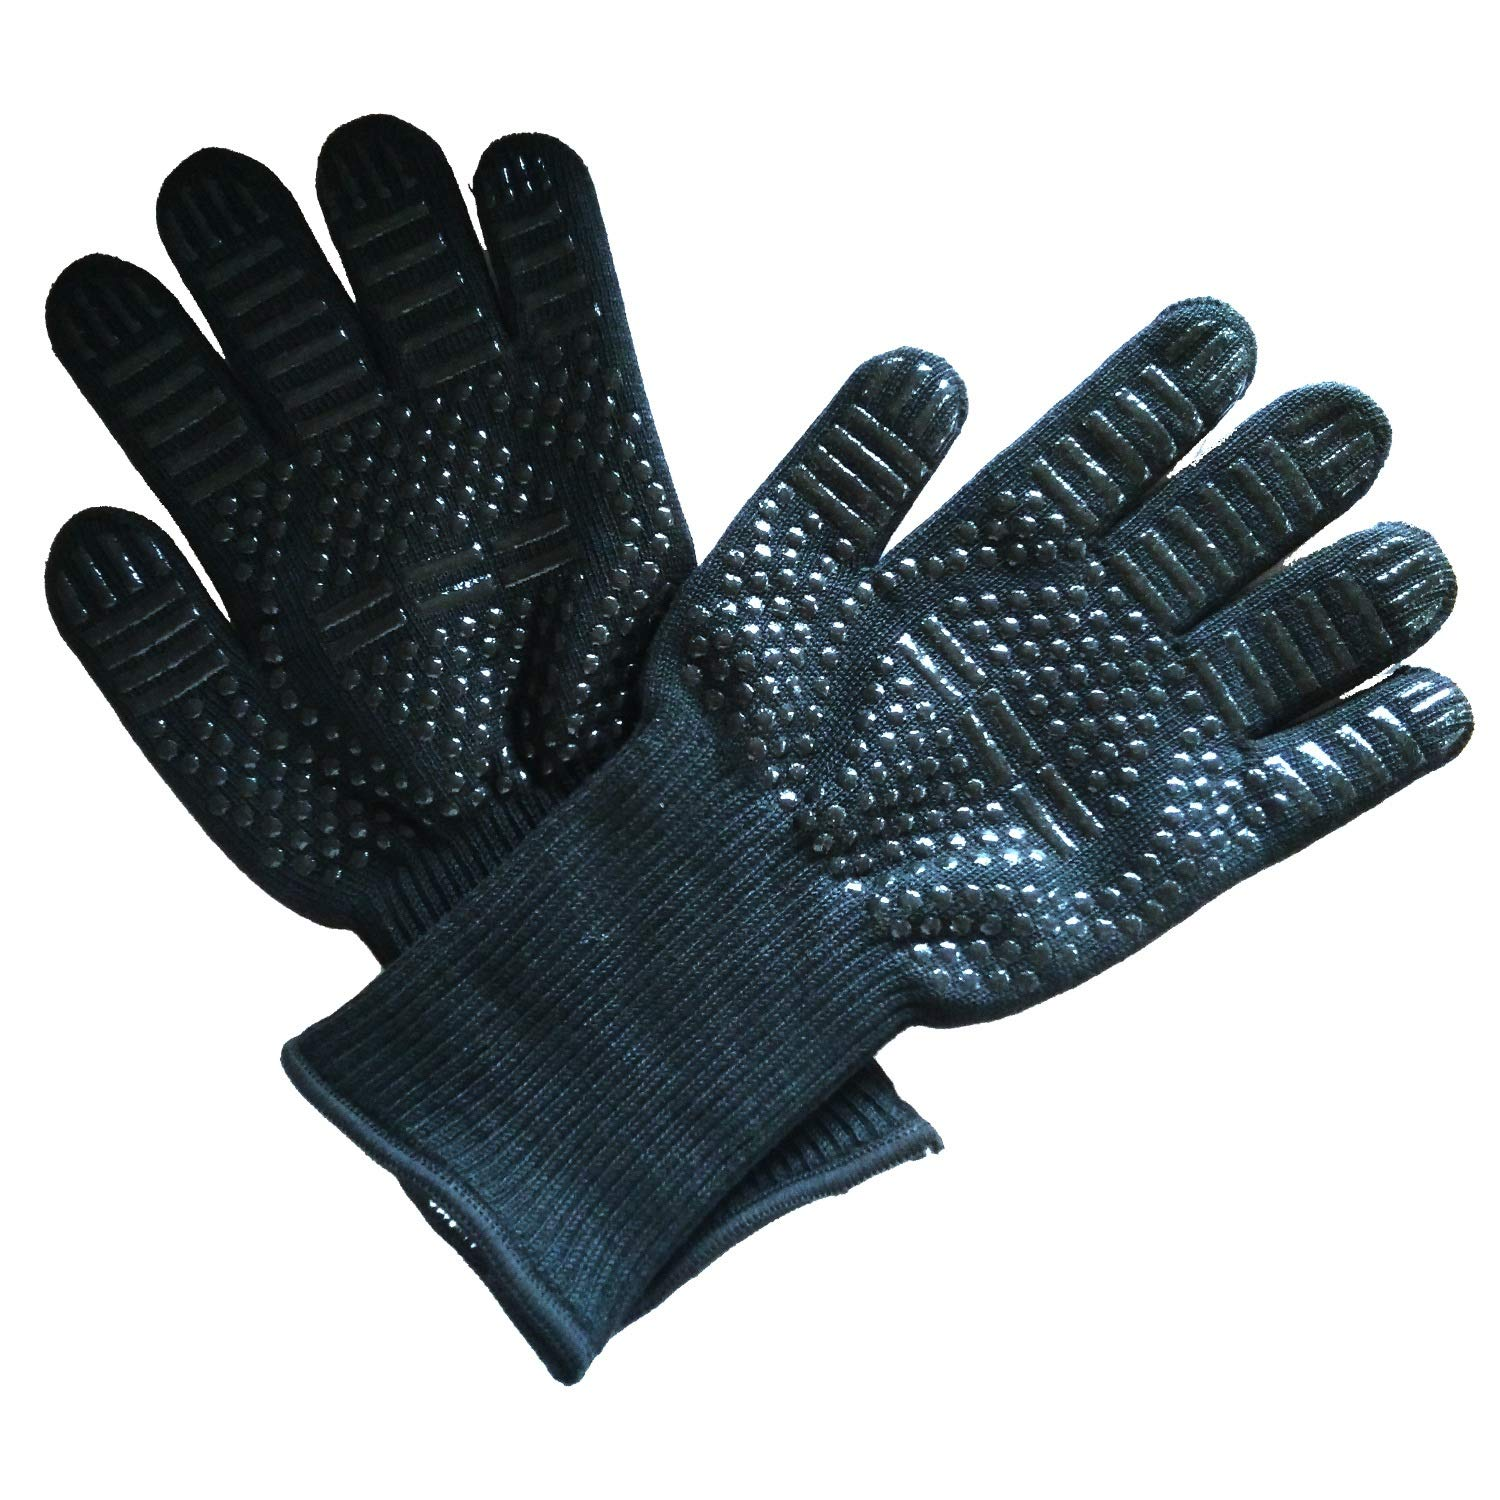 ZJYSM Comfortable Wearable Flexible Lightweight BBQ High Temperature 800 Degree Gloves Aramid Silicone Barbecue Microwave Oven Fire Insulation Flame Retardant Gloves Gloves